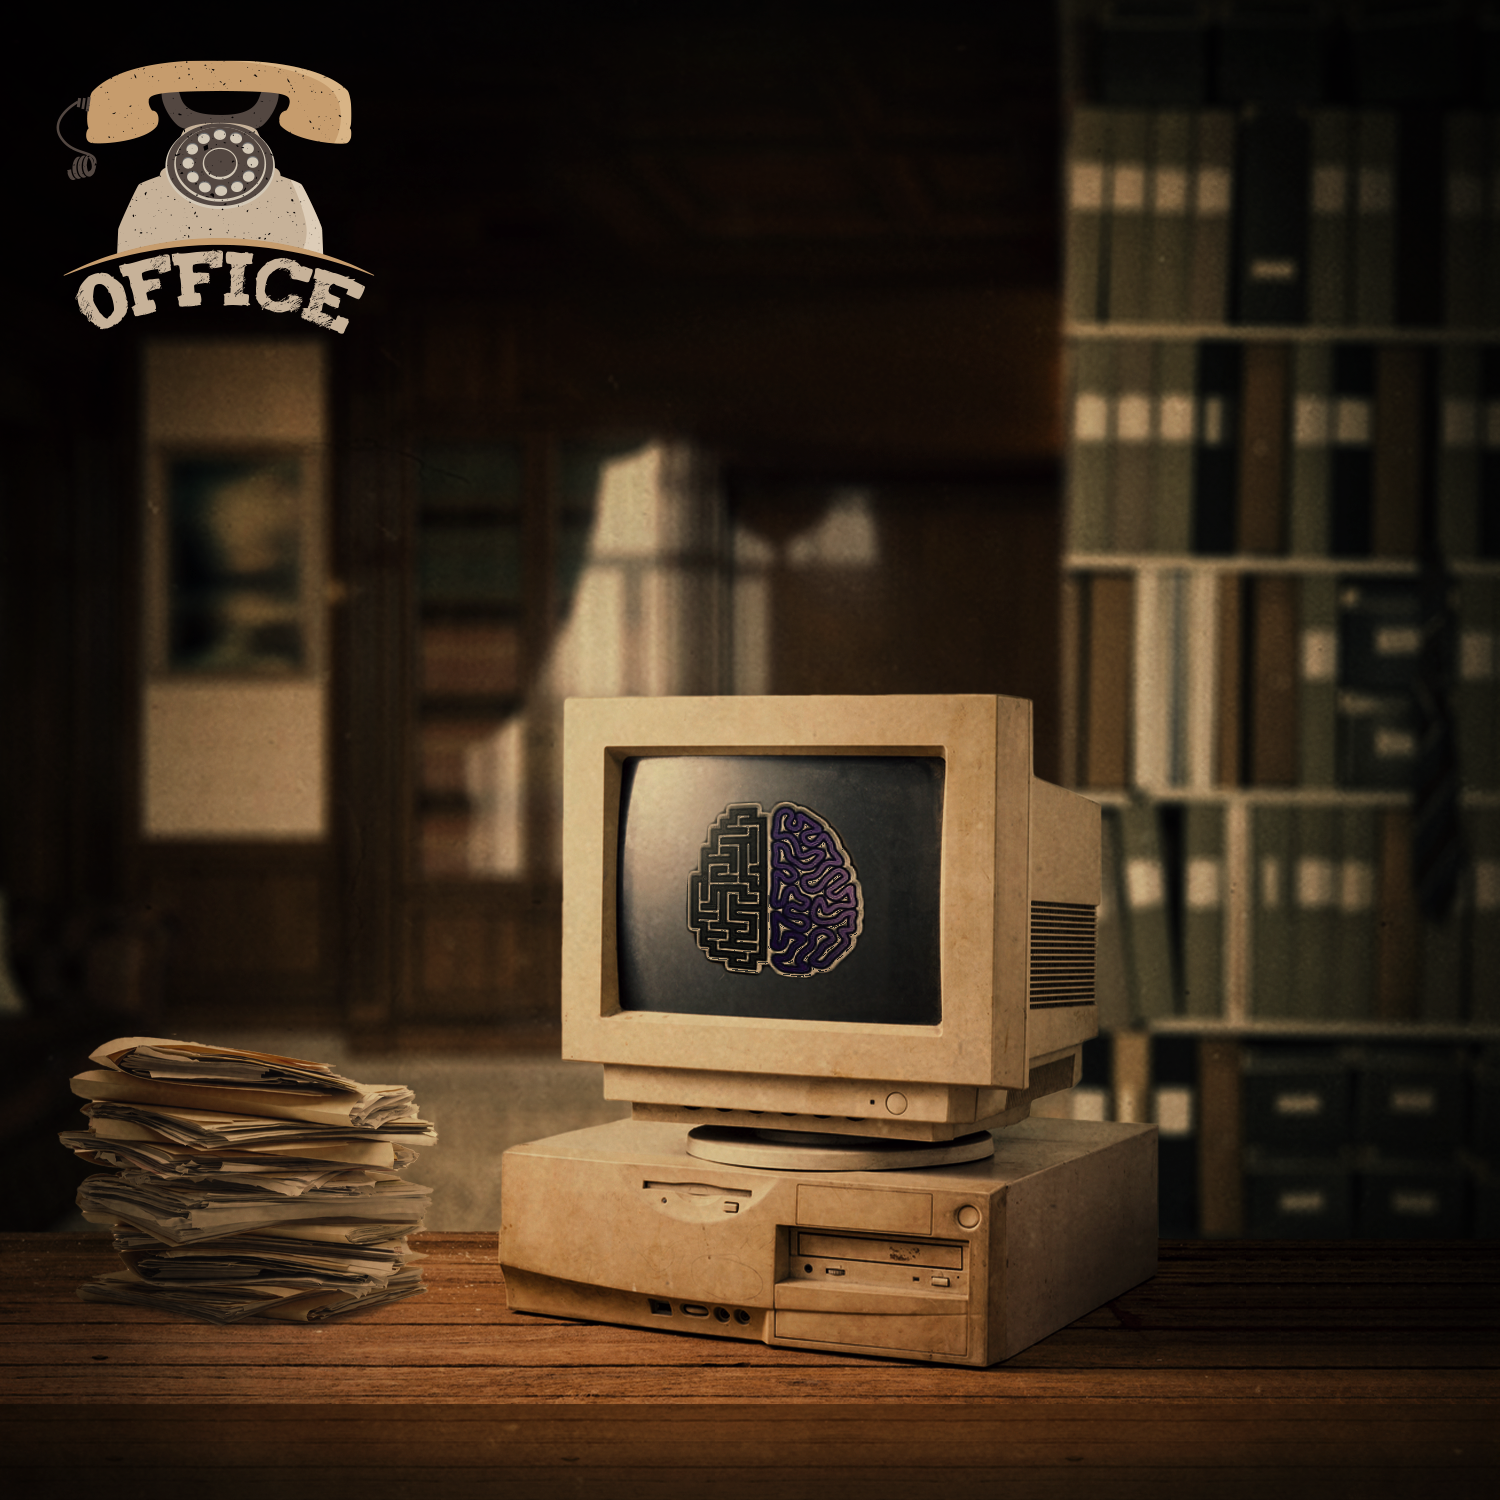 The Office by Estheo Escape Room